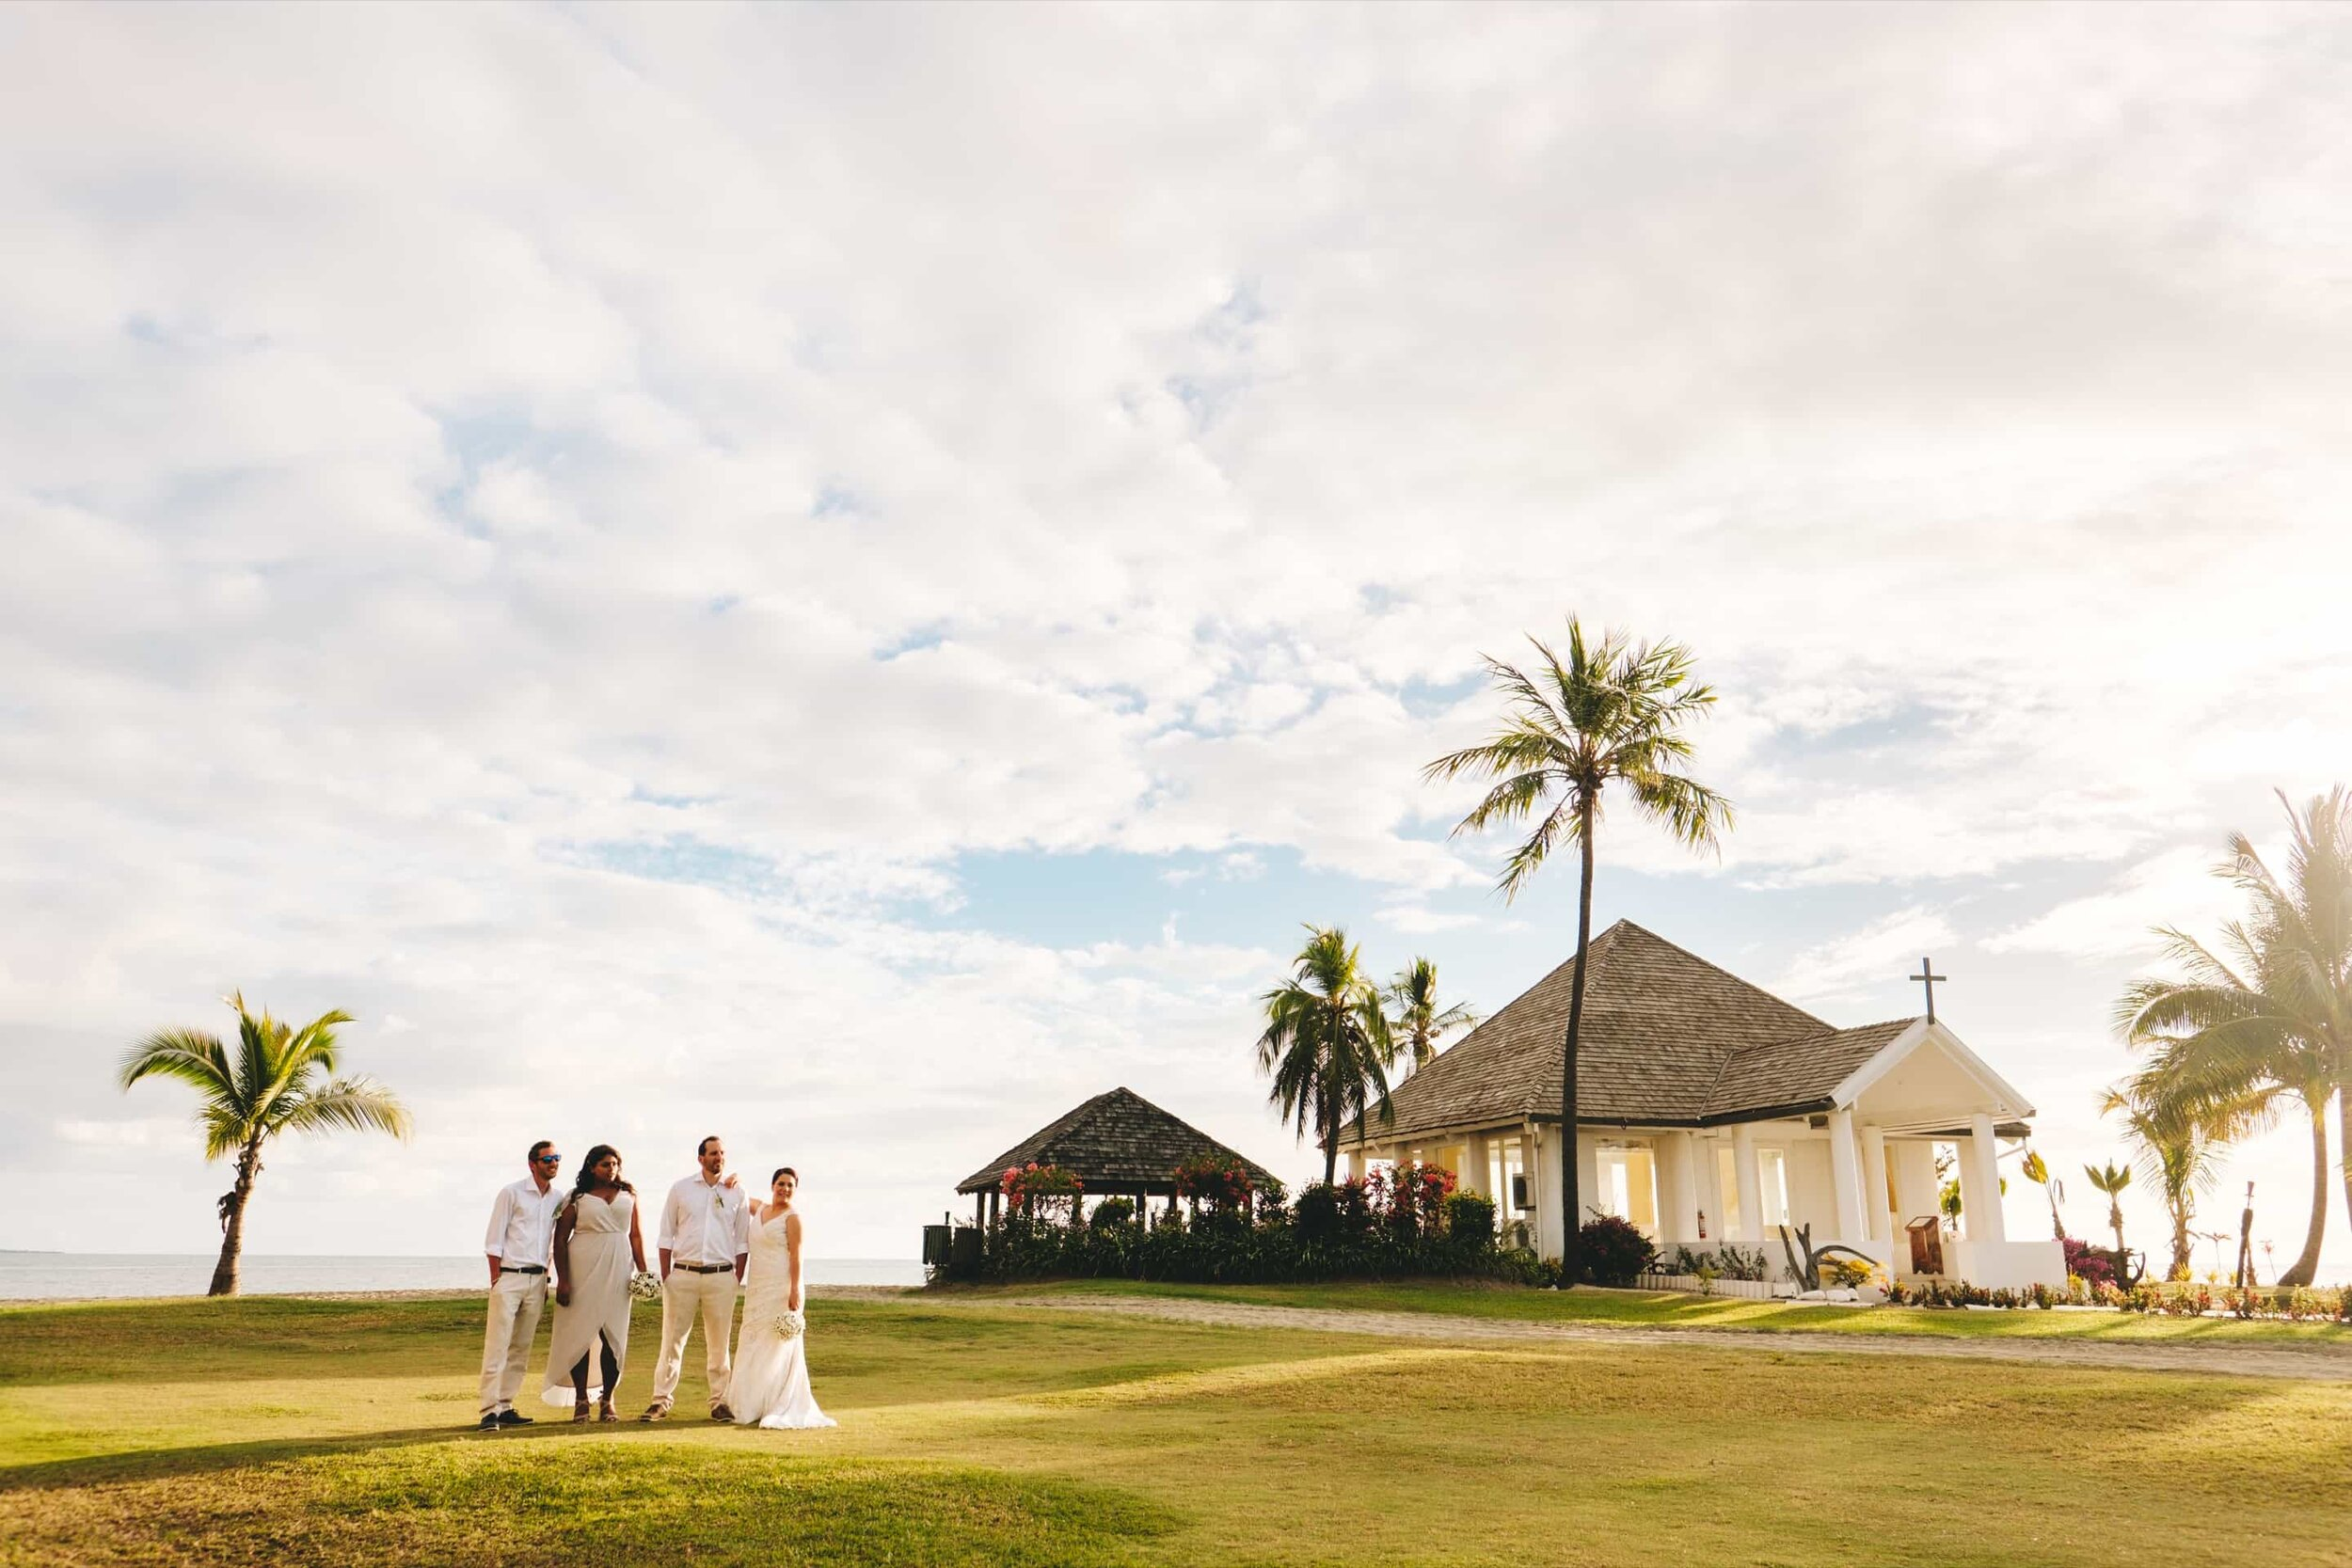 A bridal party posing in-front of the Sheraton Fiji's Wedding Chapel at Sunset